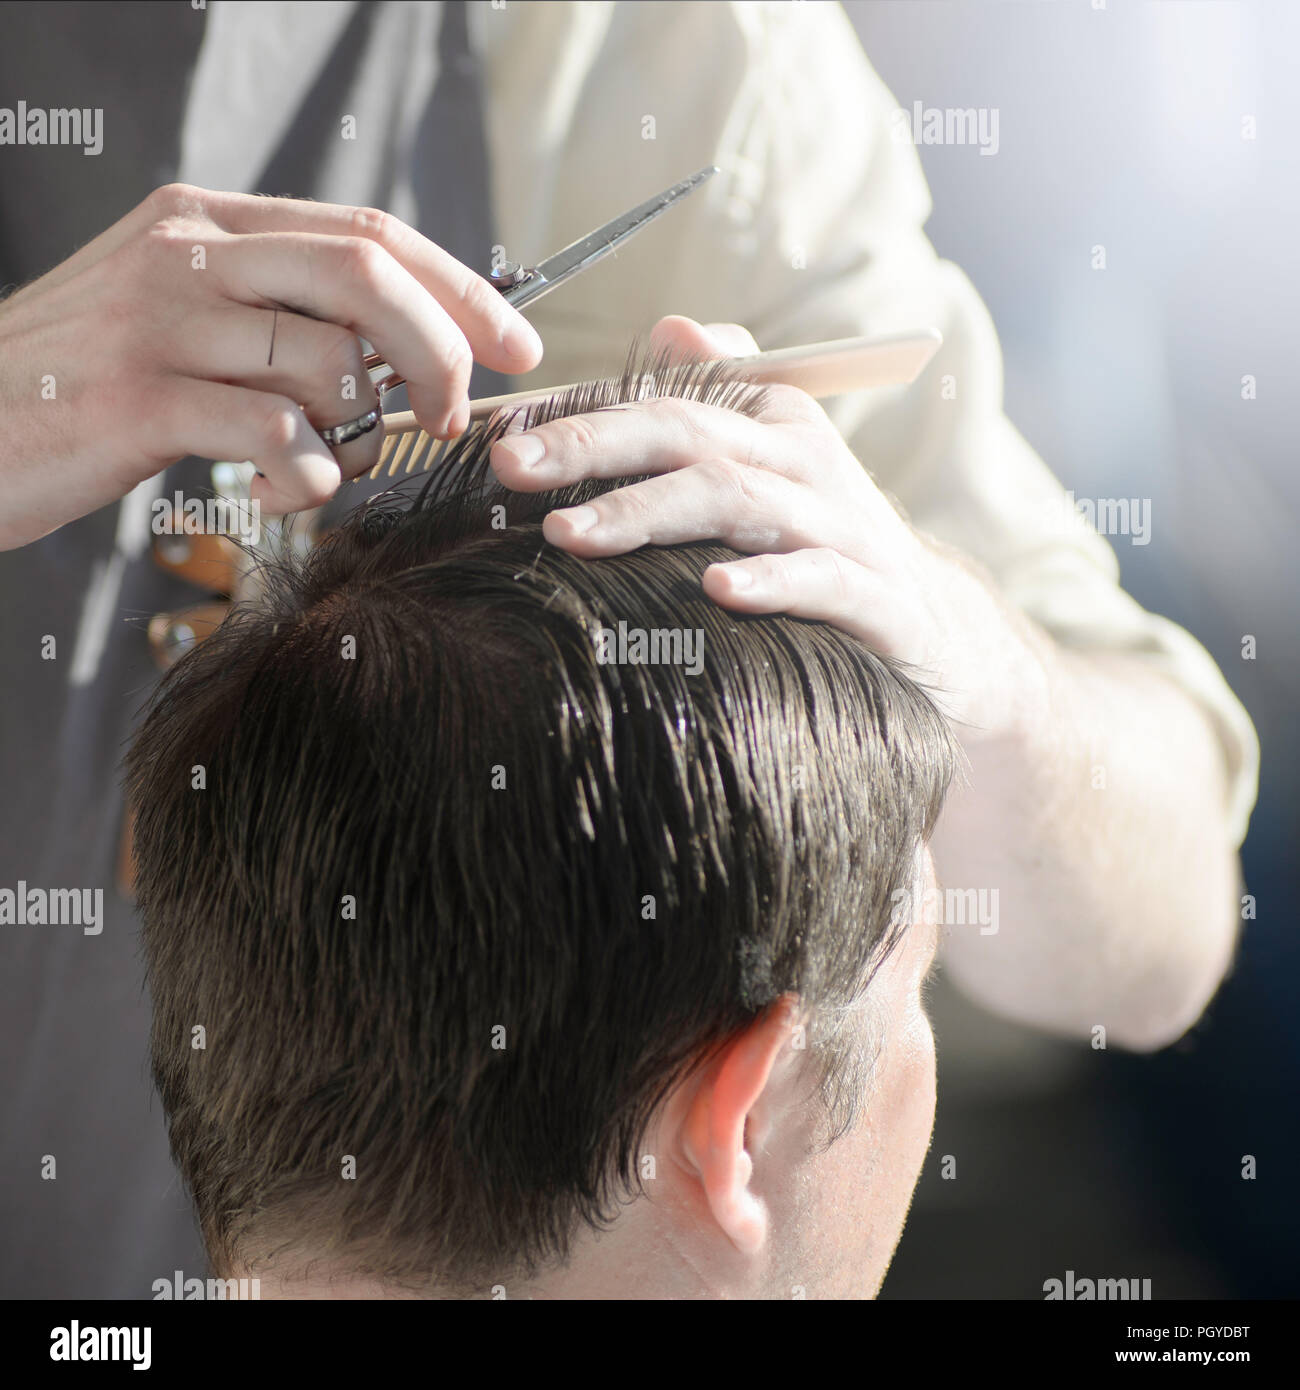 man getting haircut at barber shop. Hairdresser cutting hair of customer at salon. - Stock Image